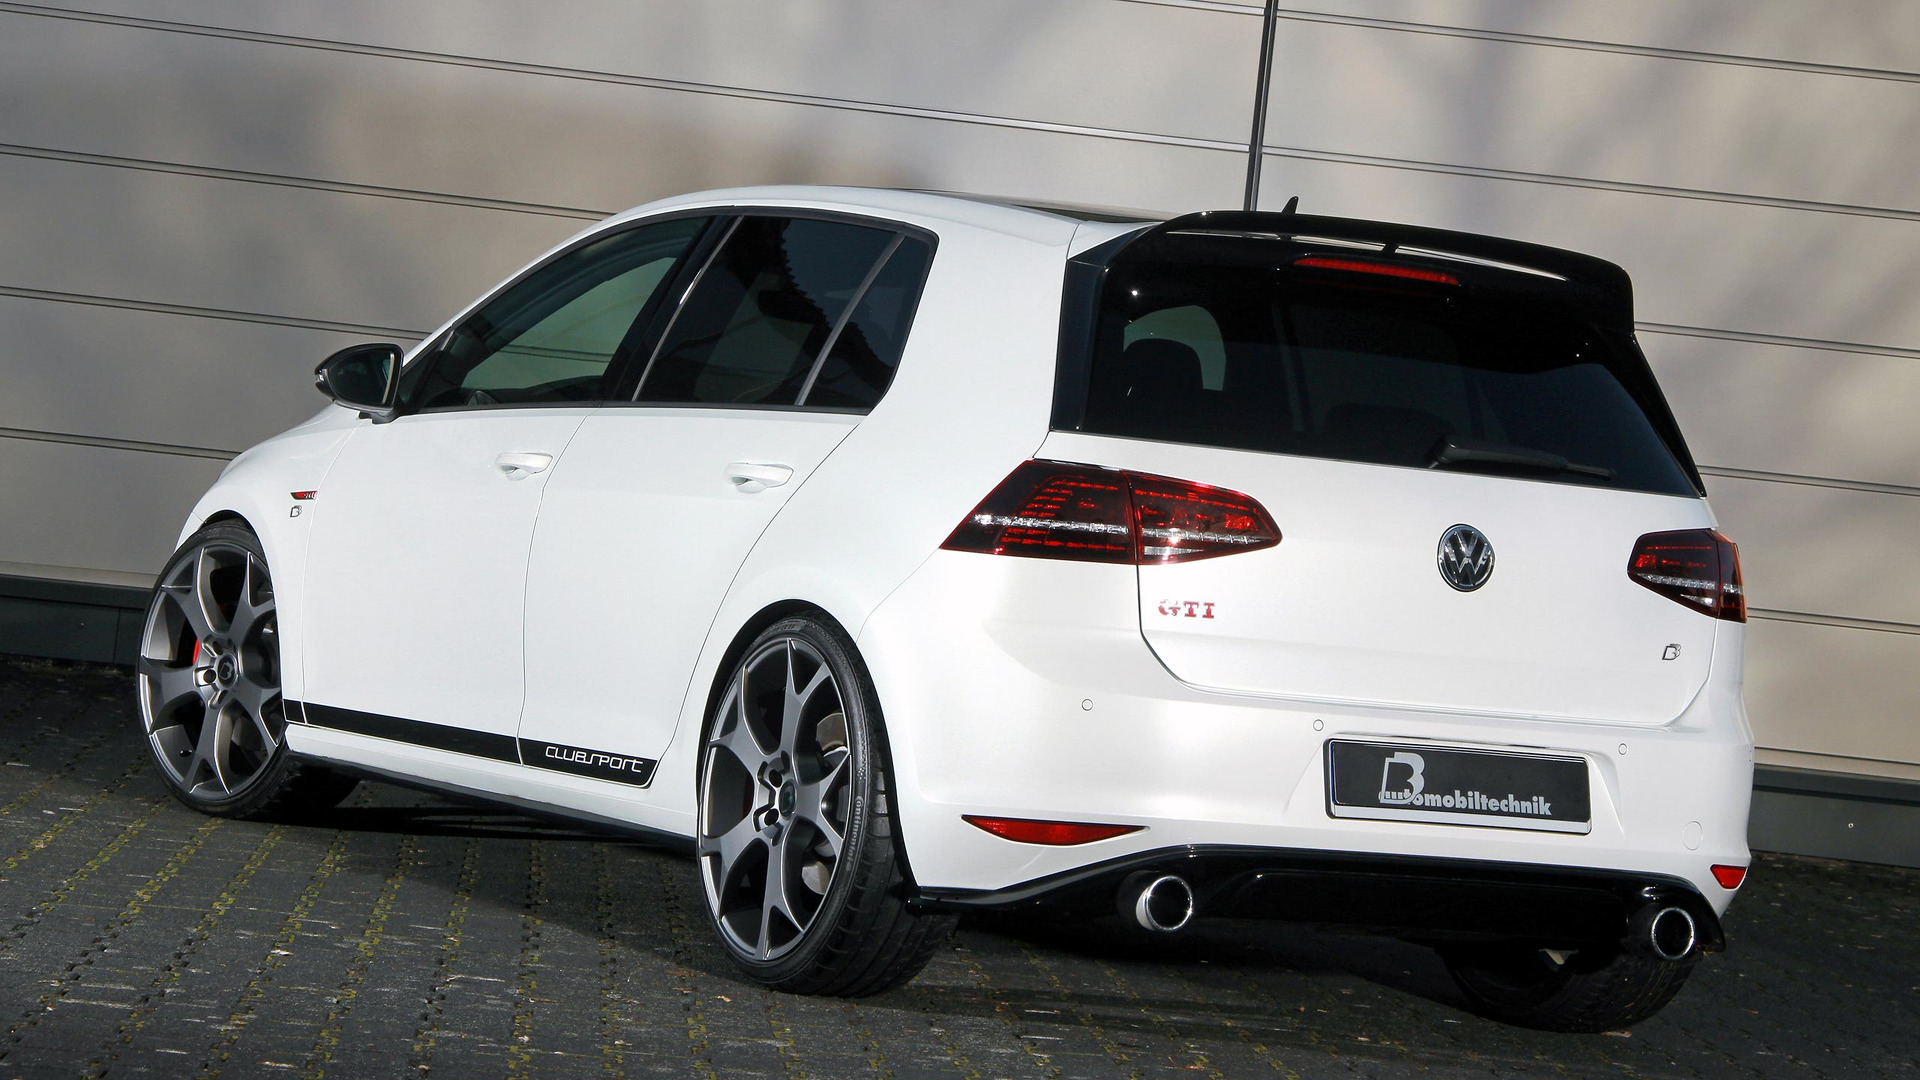 VW_Golf_GTI_Clubsport_S_by_B&B_Automobiltechnik_03